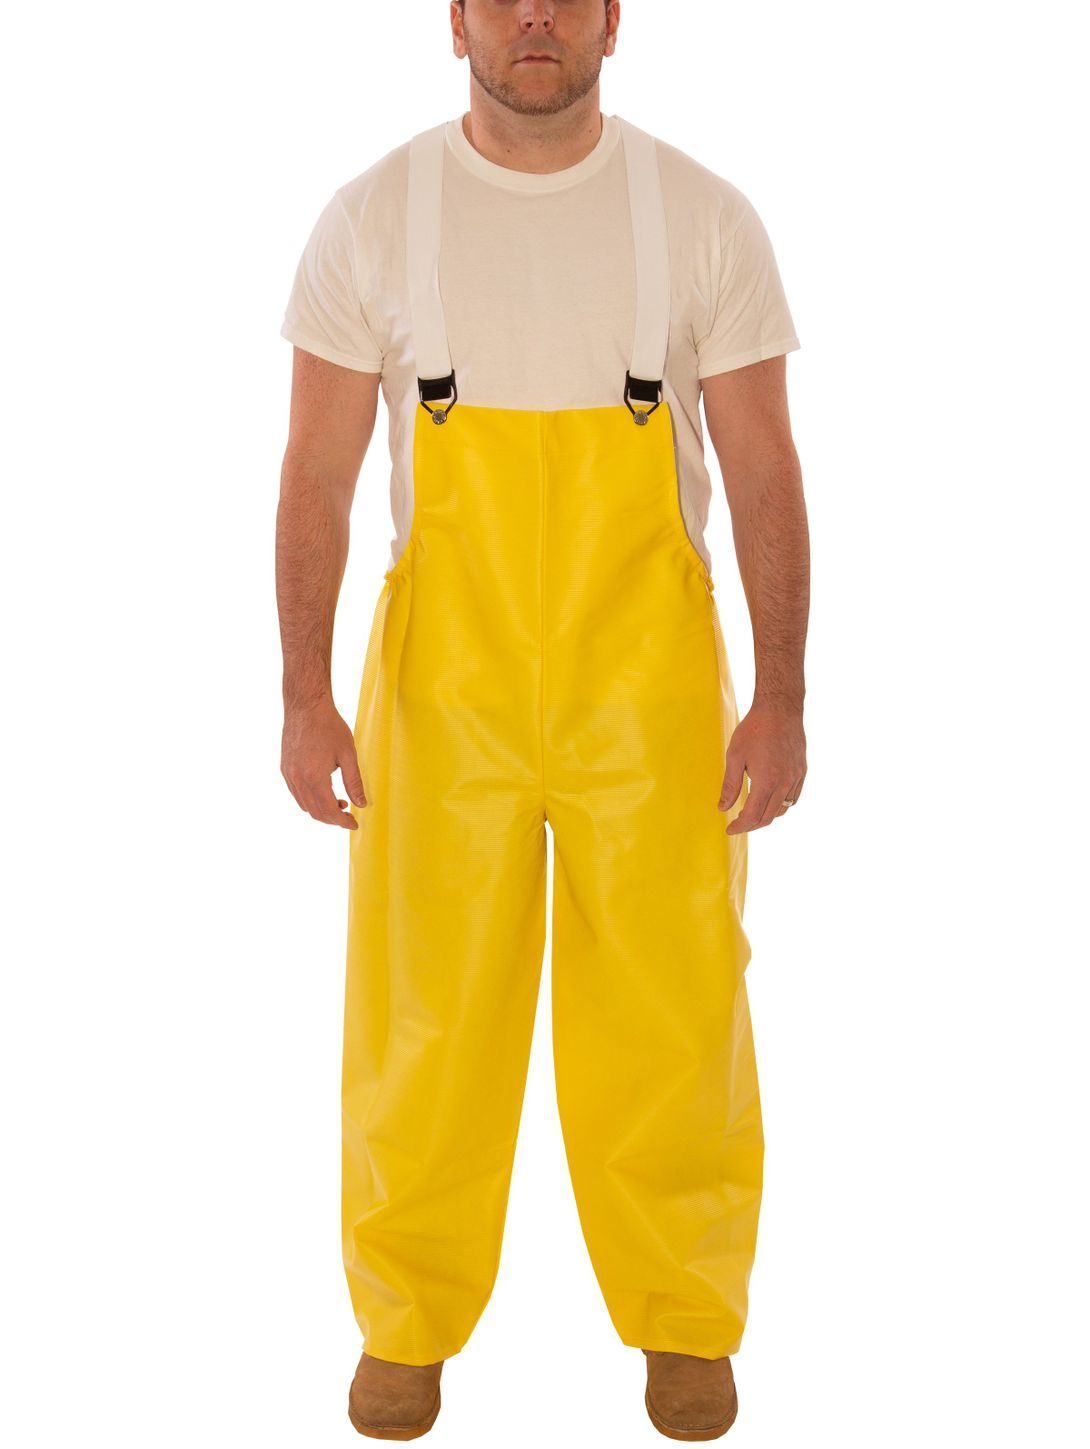 tingley-o31007-webdri-chemical-resistant-overalls-pvc-coated-tear-resistant-plain-front-front.jpg